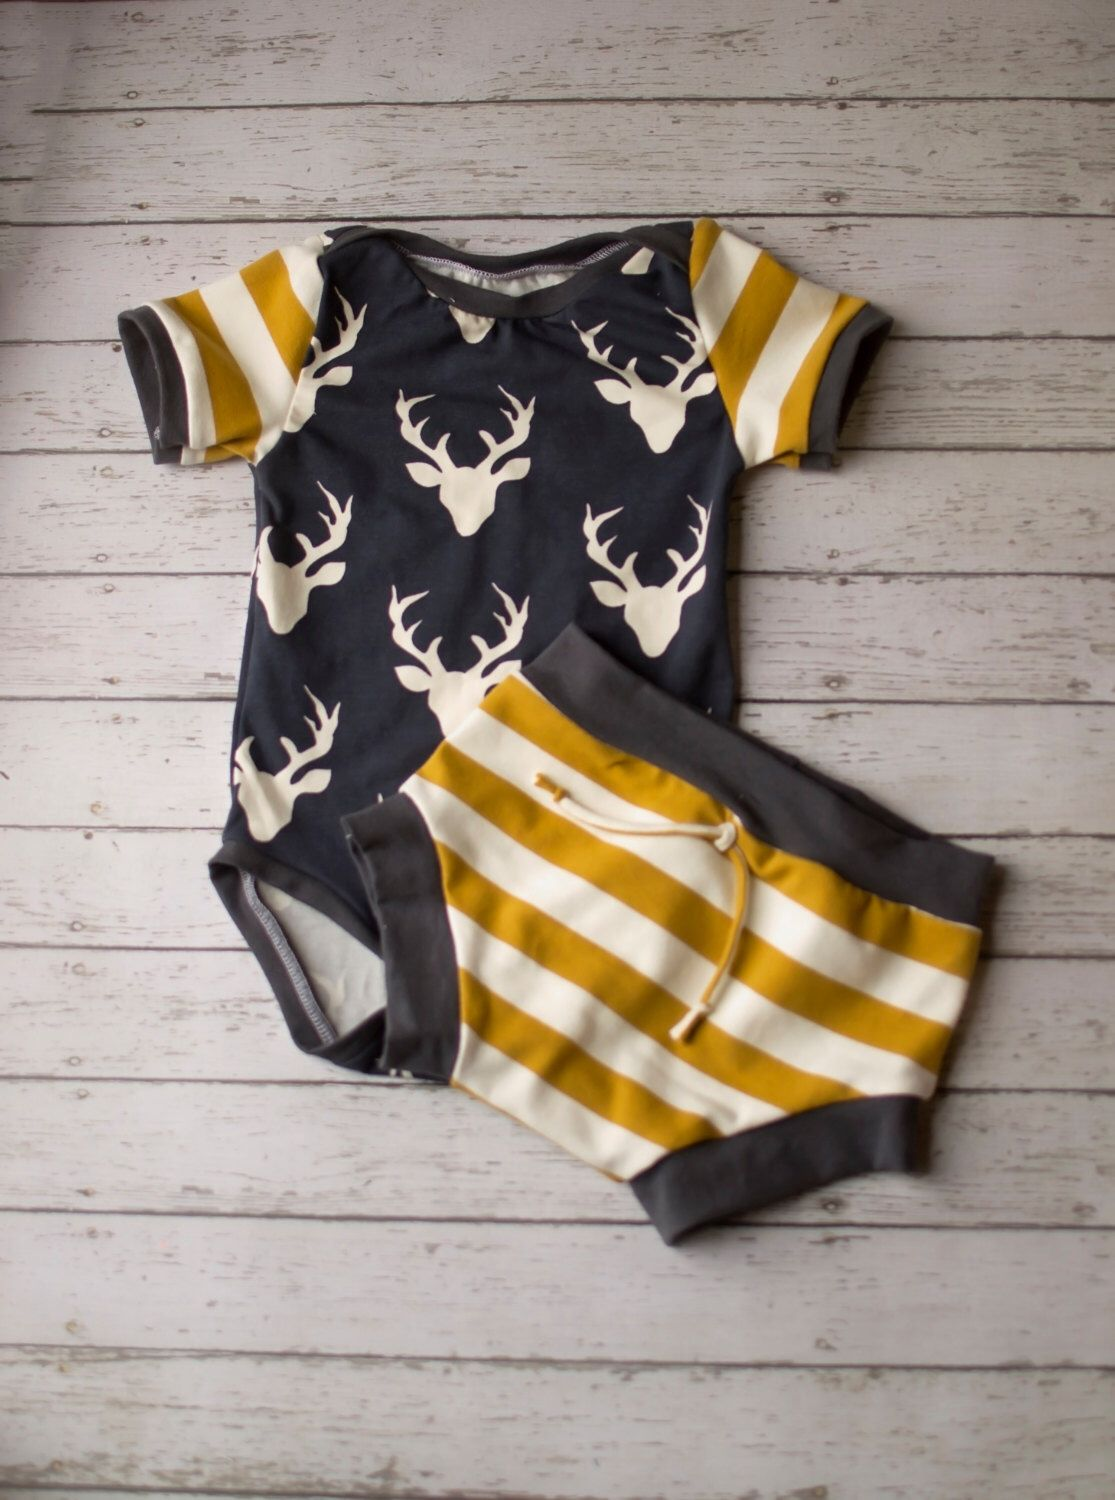 Baby Boy Baby Boy Clothing Boys Summer Clothing Newborn